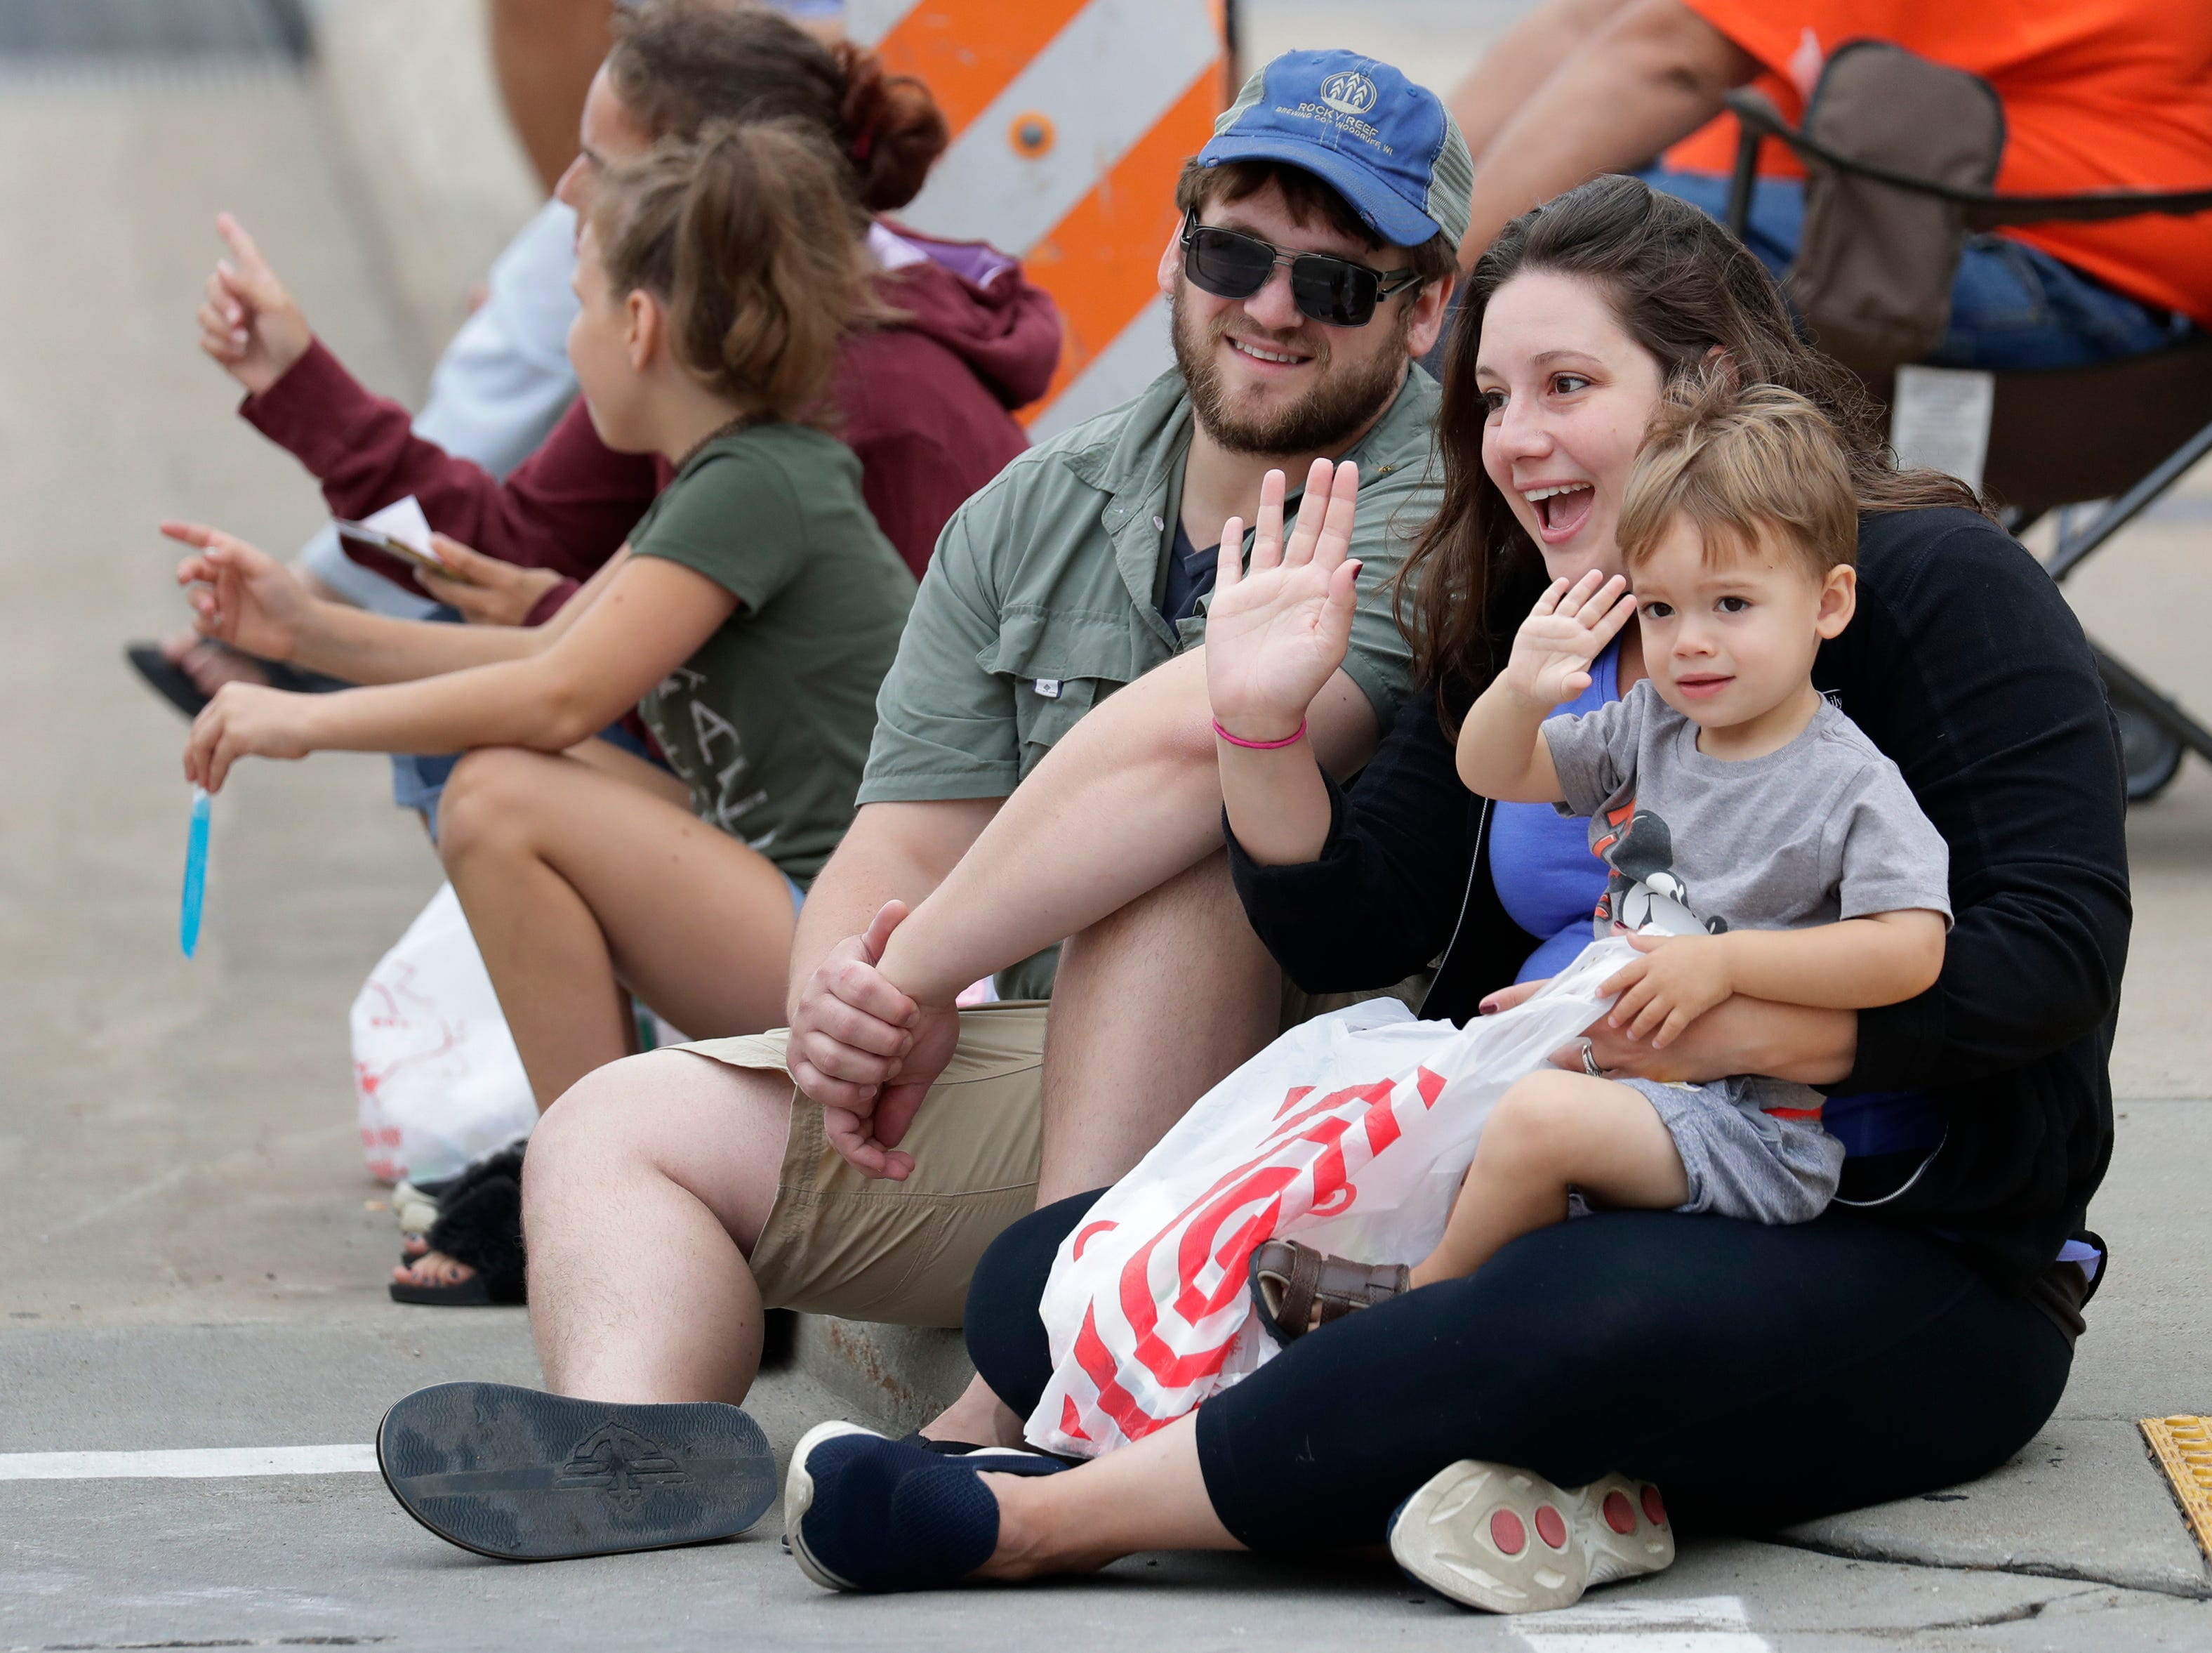 Jenny Szmanda of Menasha waves with her son David, 2, as participants pass by during the Neenah-Menasha Labor Day Parade Monday, Sept. 3, 2018, in downtown Menasha, Wis. At left is David's father Willie Szmanda.